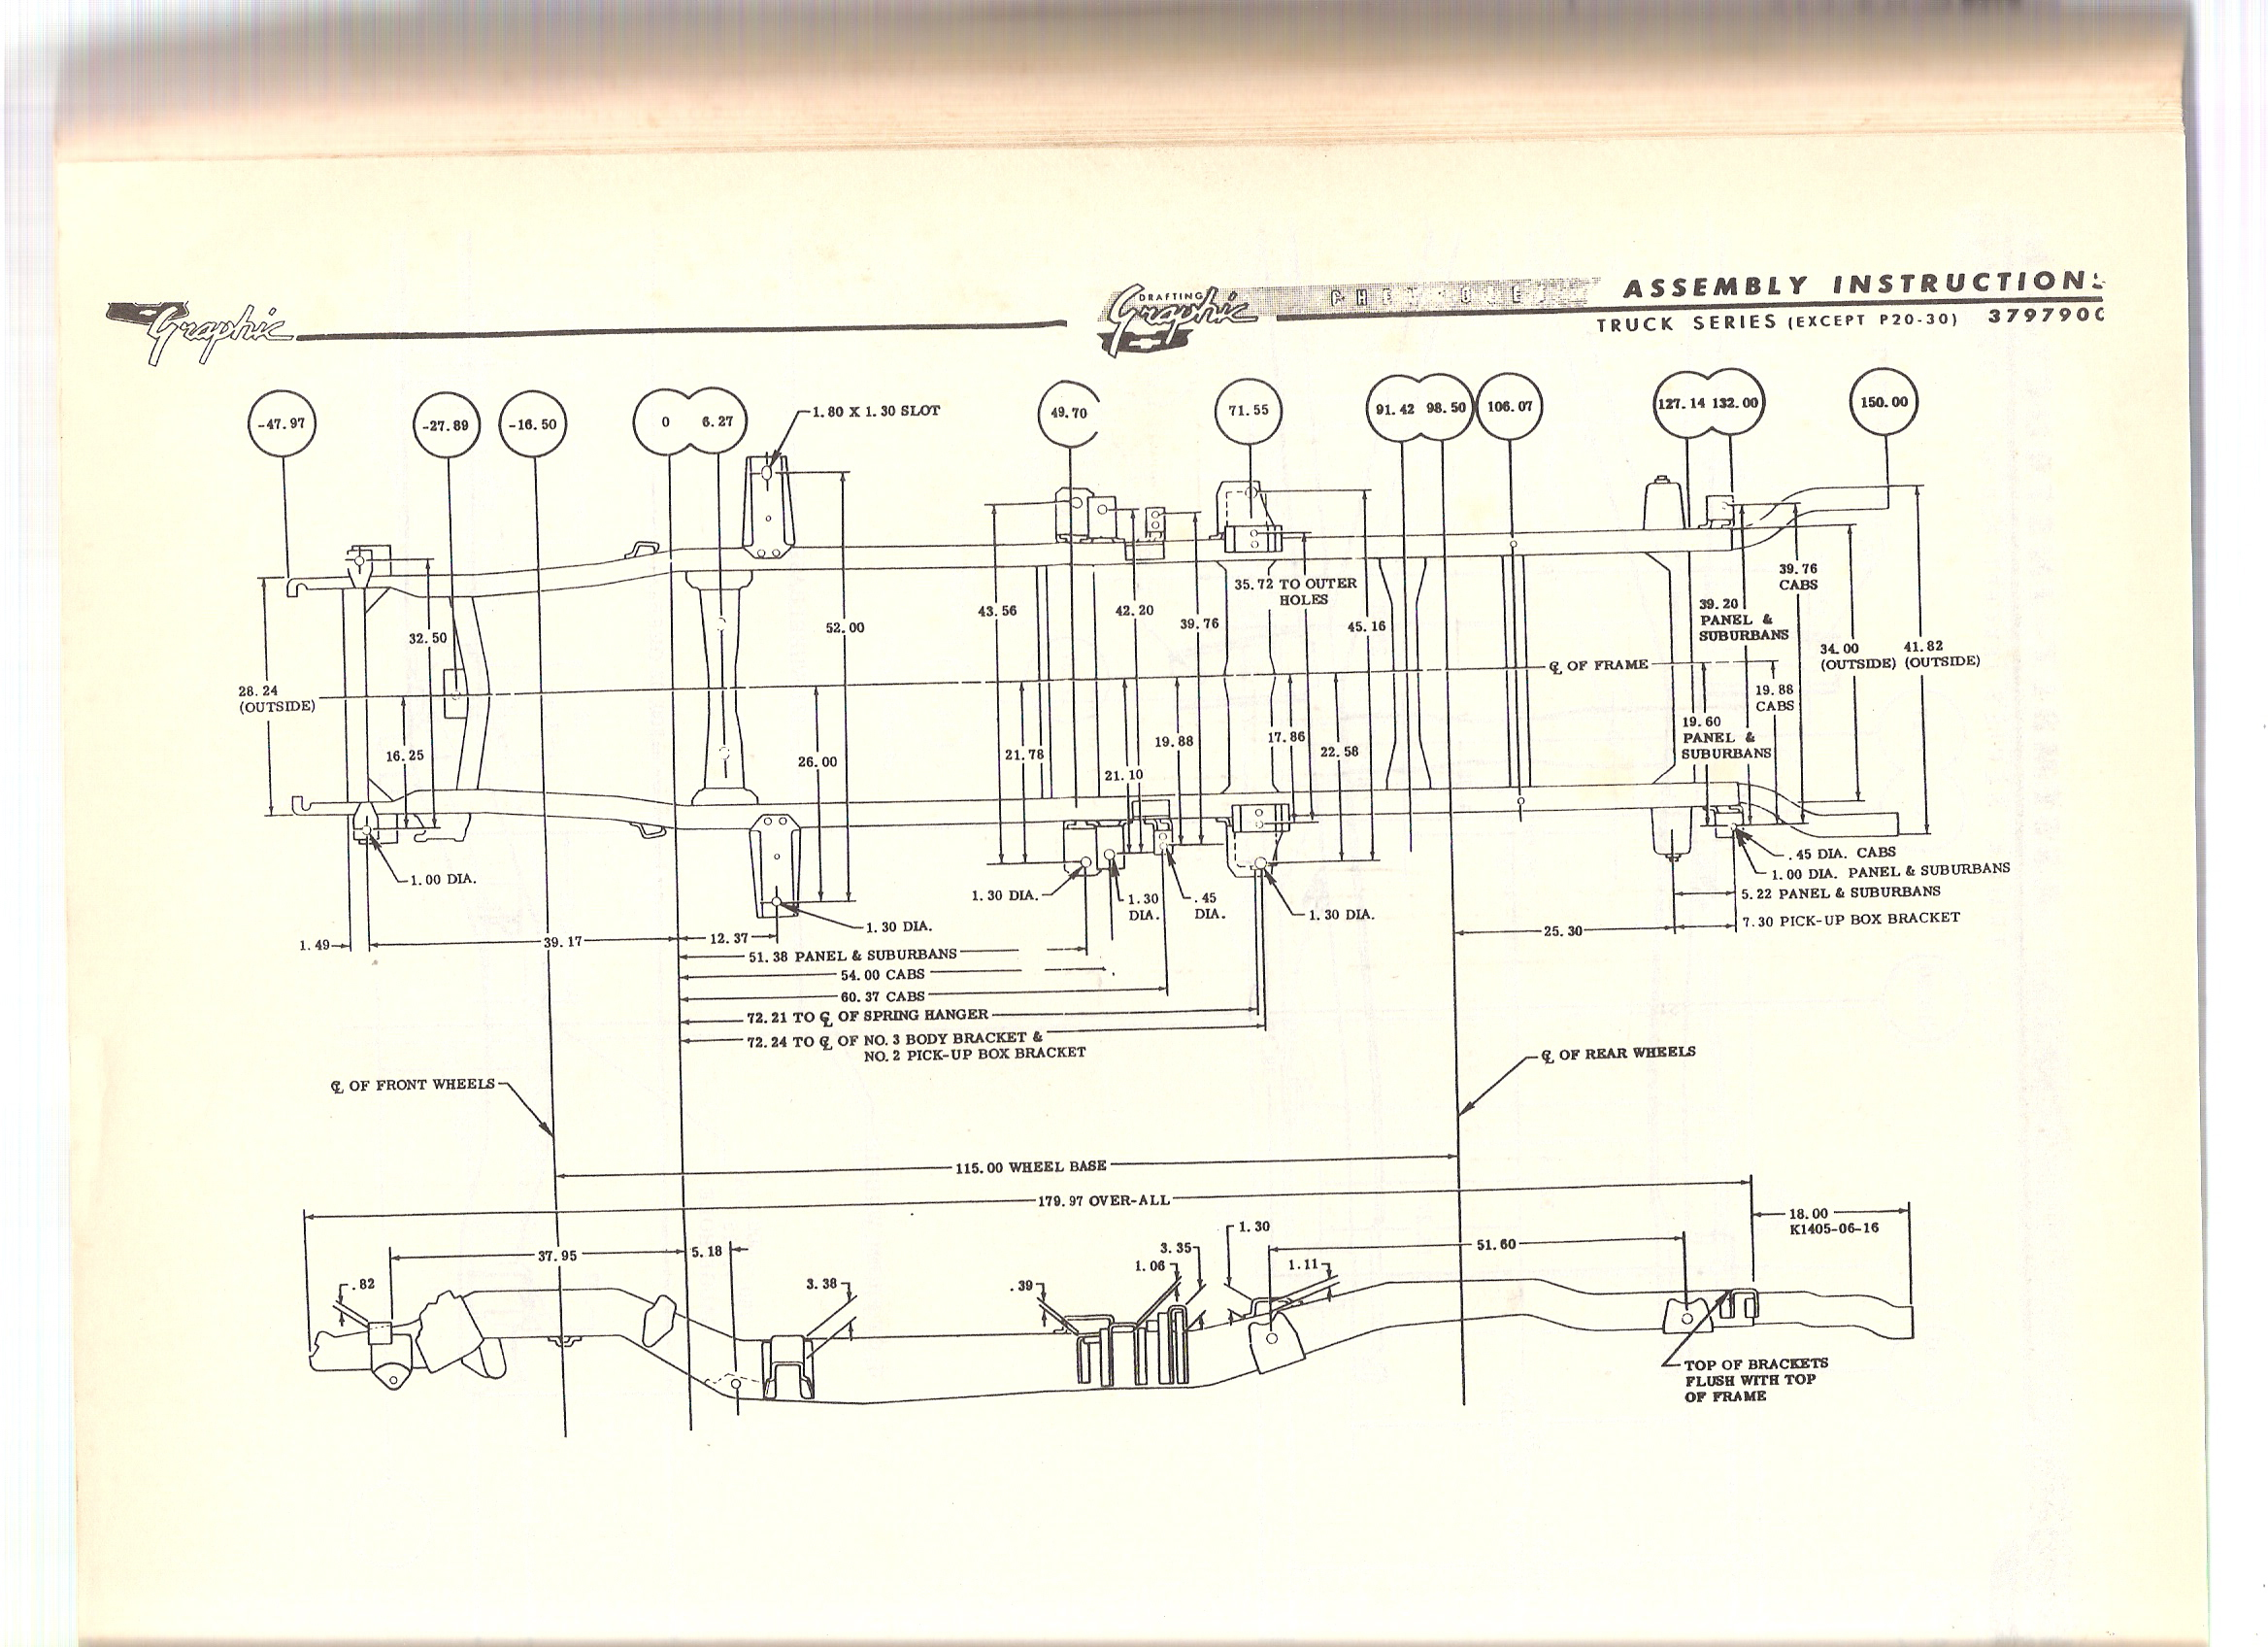 Gmc Truck Wiring Diagrams : Gmc truck electrical wiring diagrams diagram